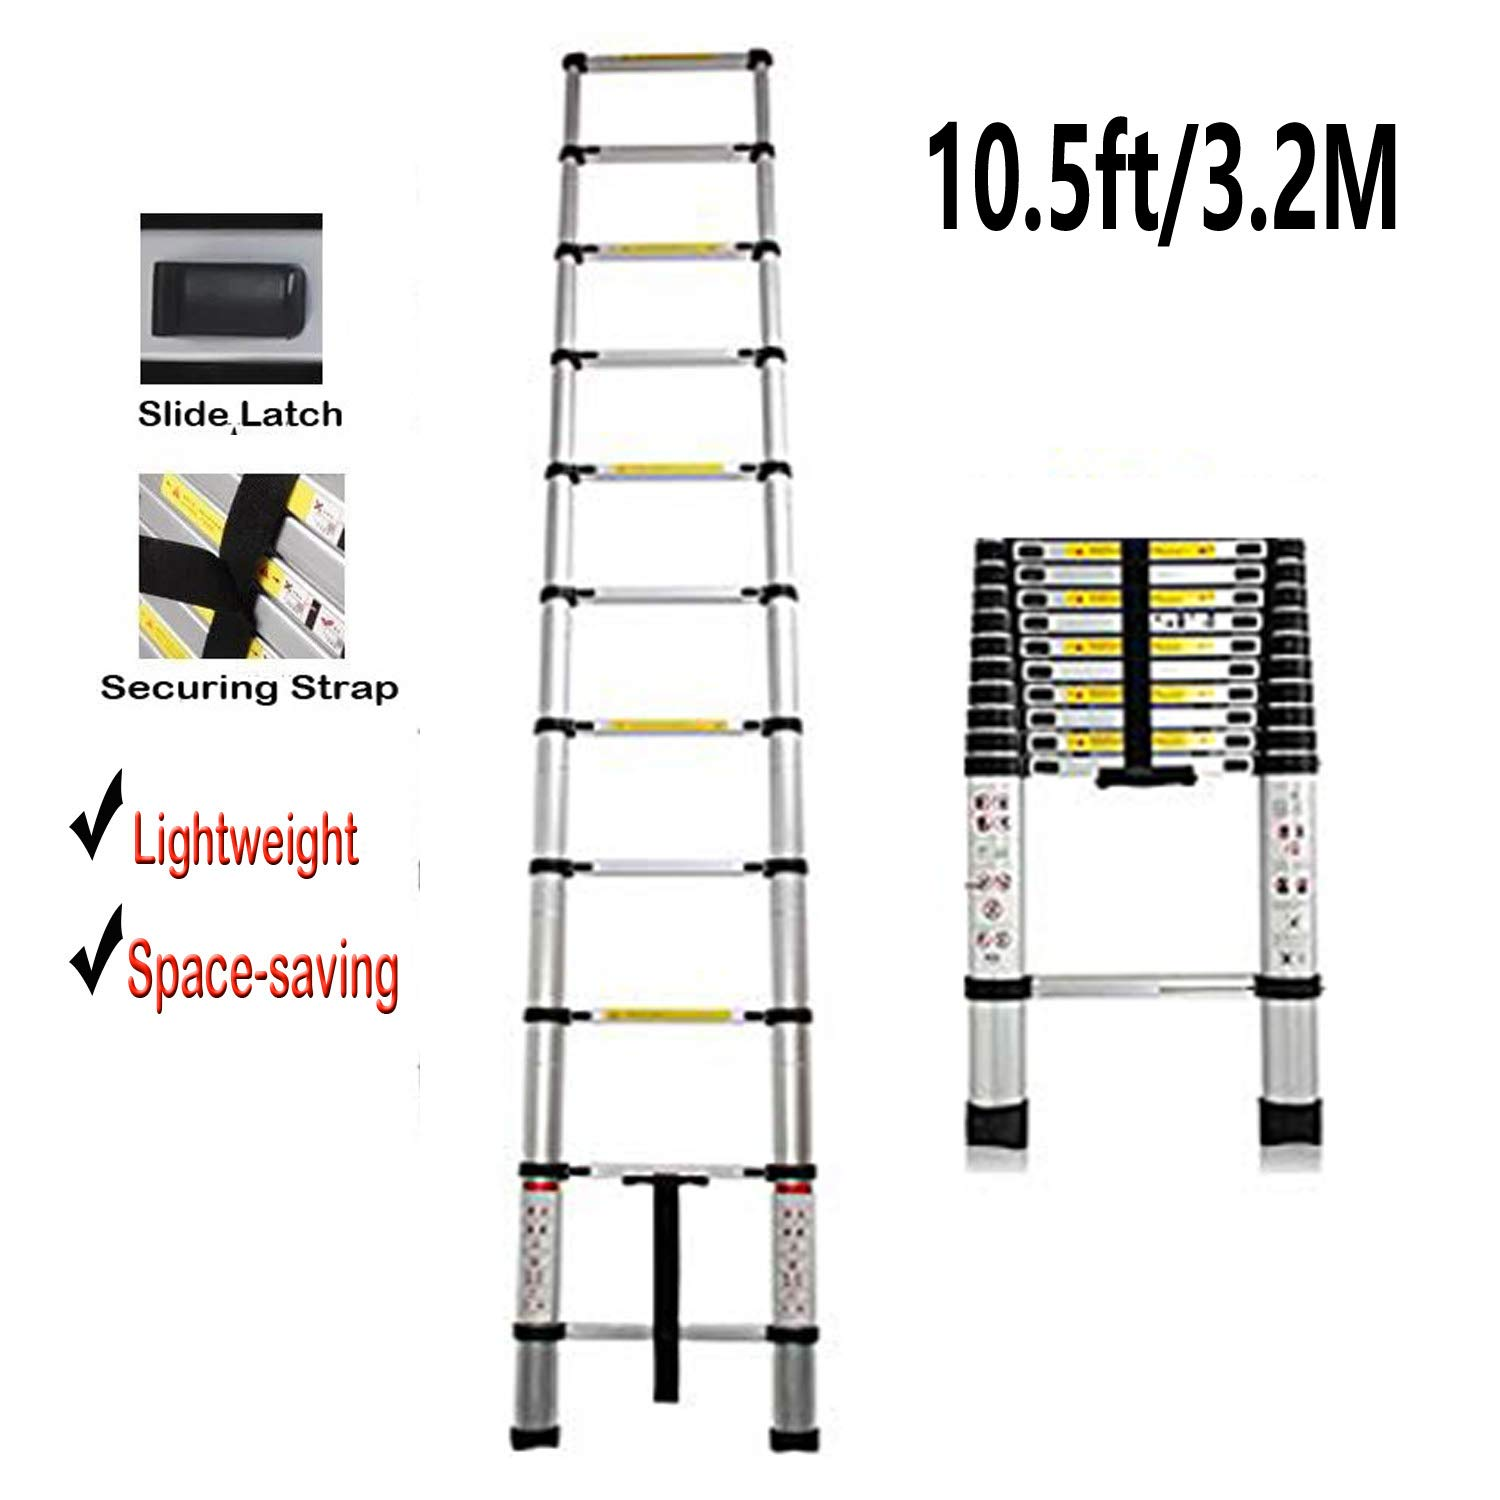 3.2M/10.5FT Aluminium Telescopic Ladder Portable Multi Purpose Ladder Steps Extension Extendable Ladder Perfect for Outdoor Indoor Builder DIY Jobs by Autofu